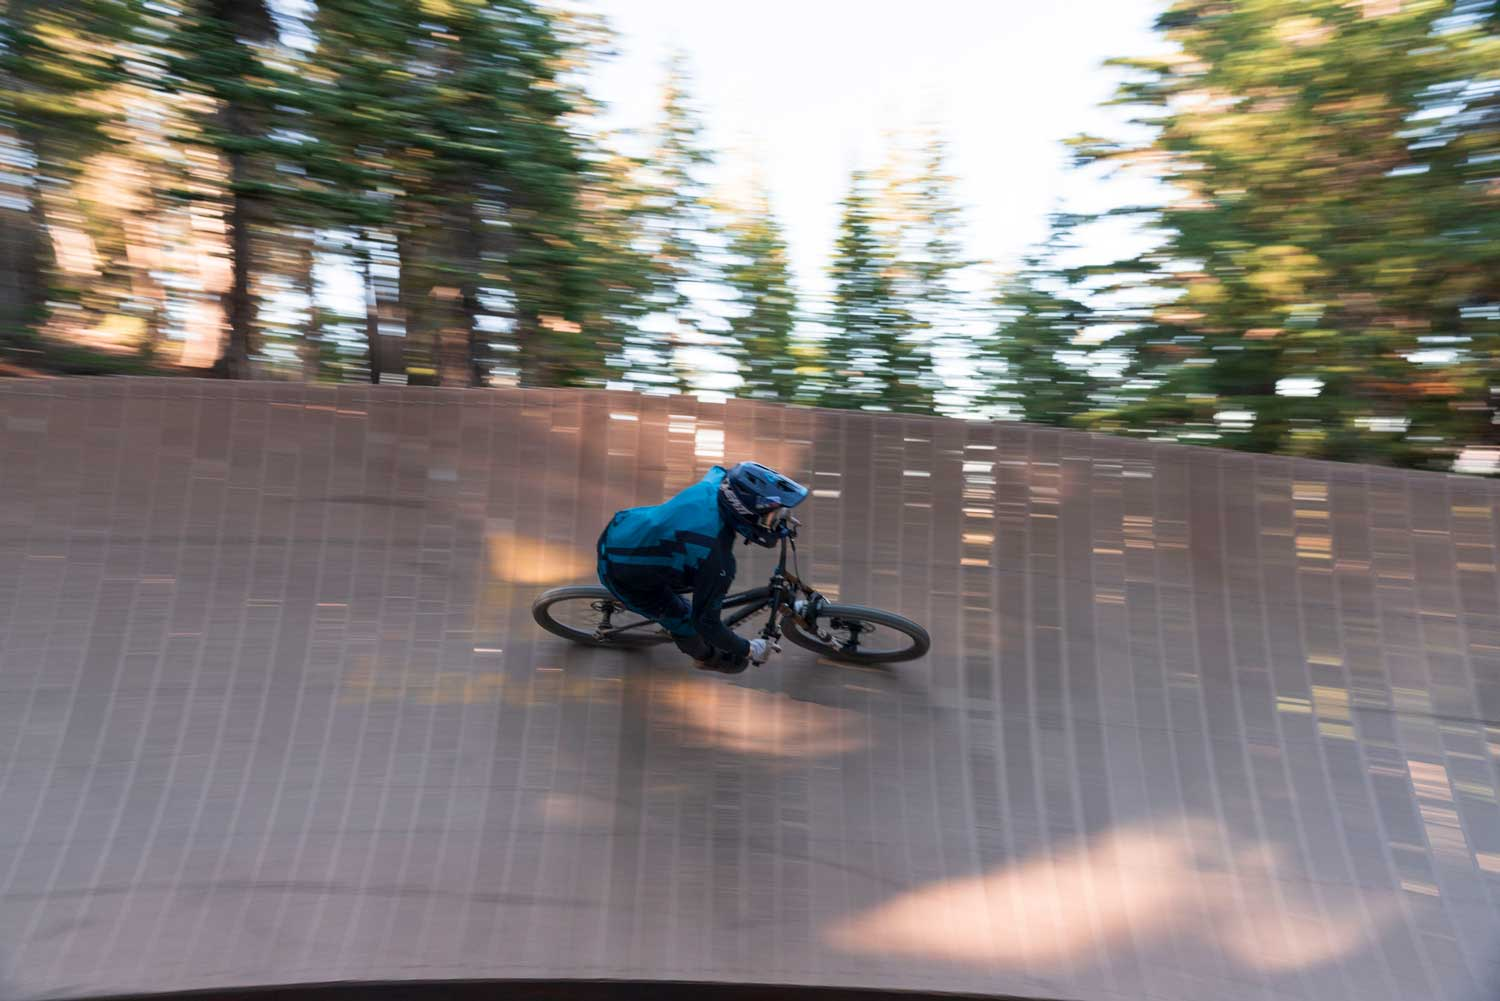 North American Bike Park Review Tour - Mammoth Bike Park